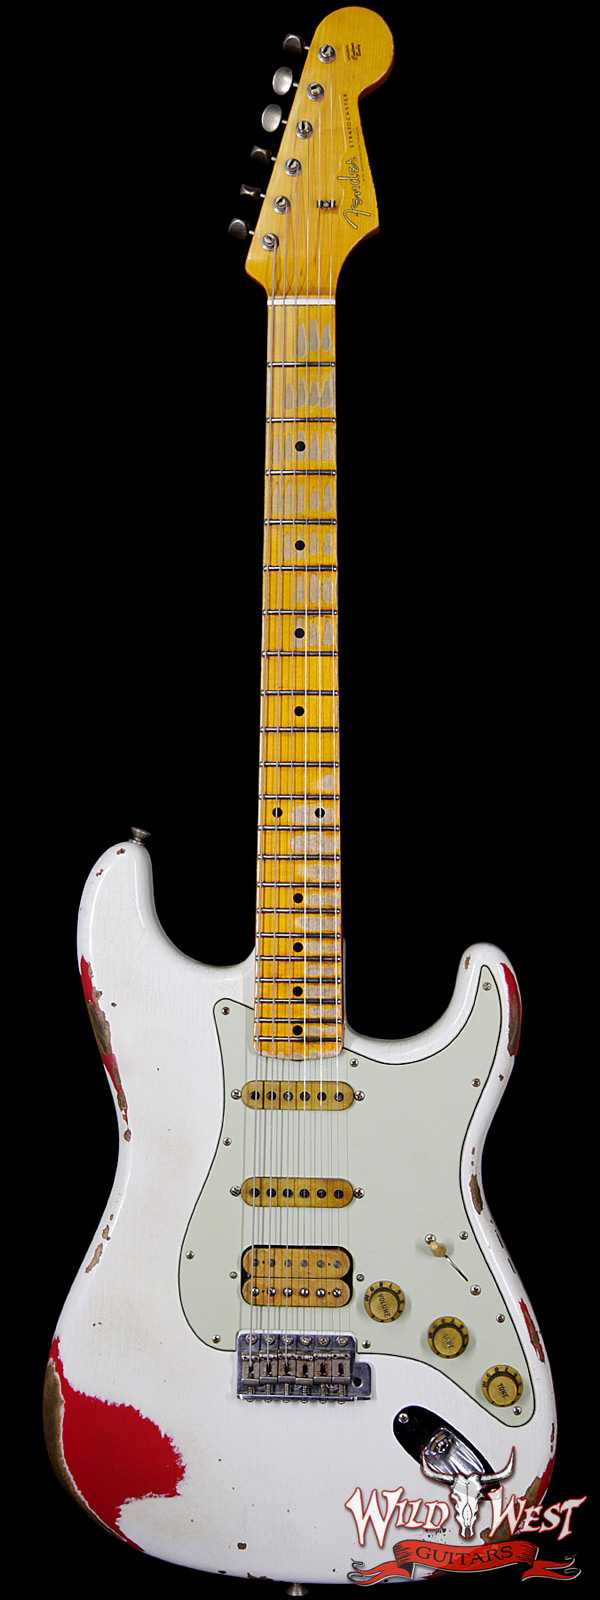 Fender Custom Shop White Lightning 2.0 HSS Stratocaster Heavy Relic Maple Board 21 Frets Torino Red